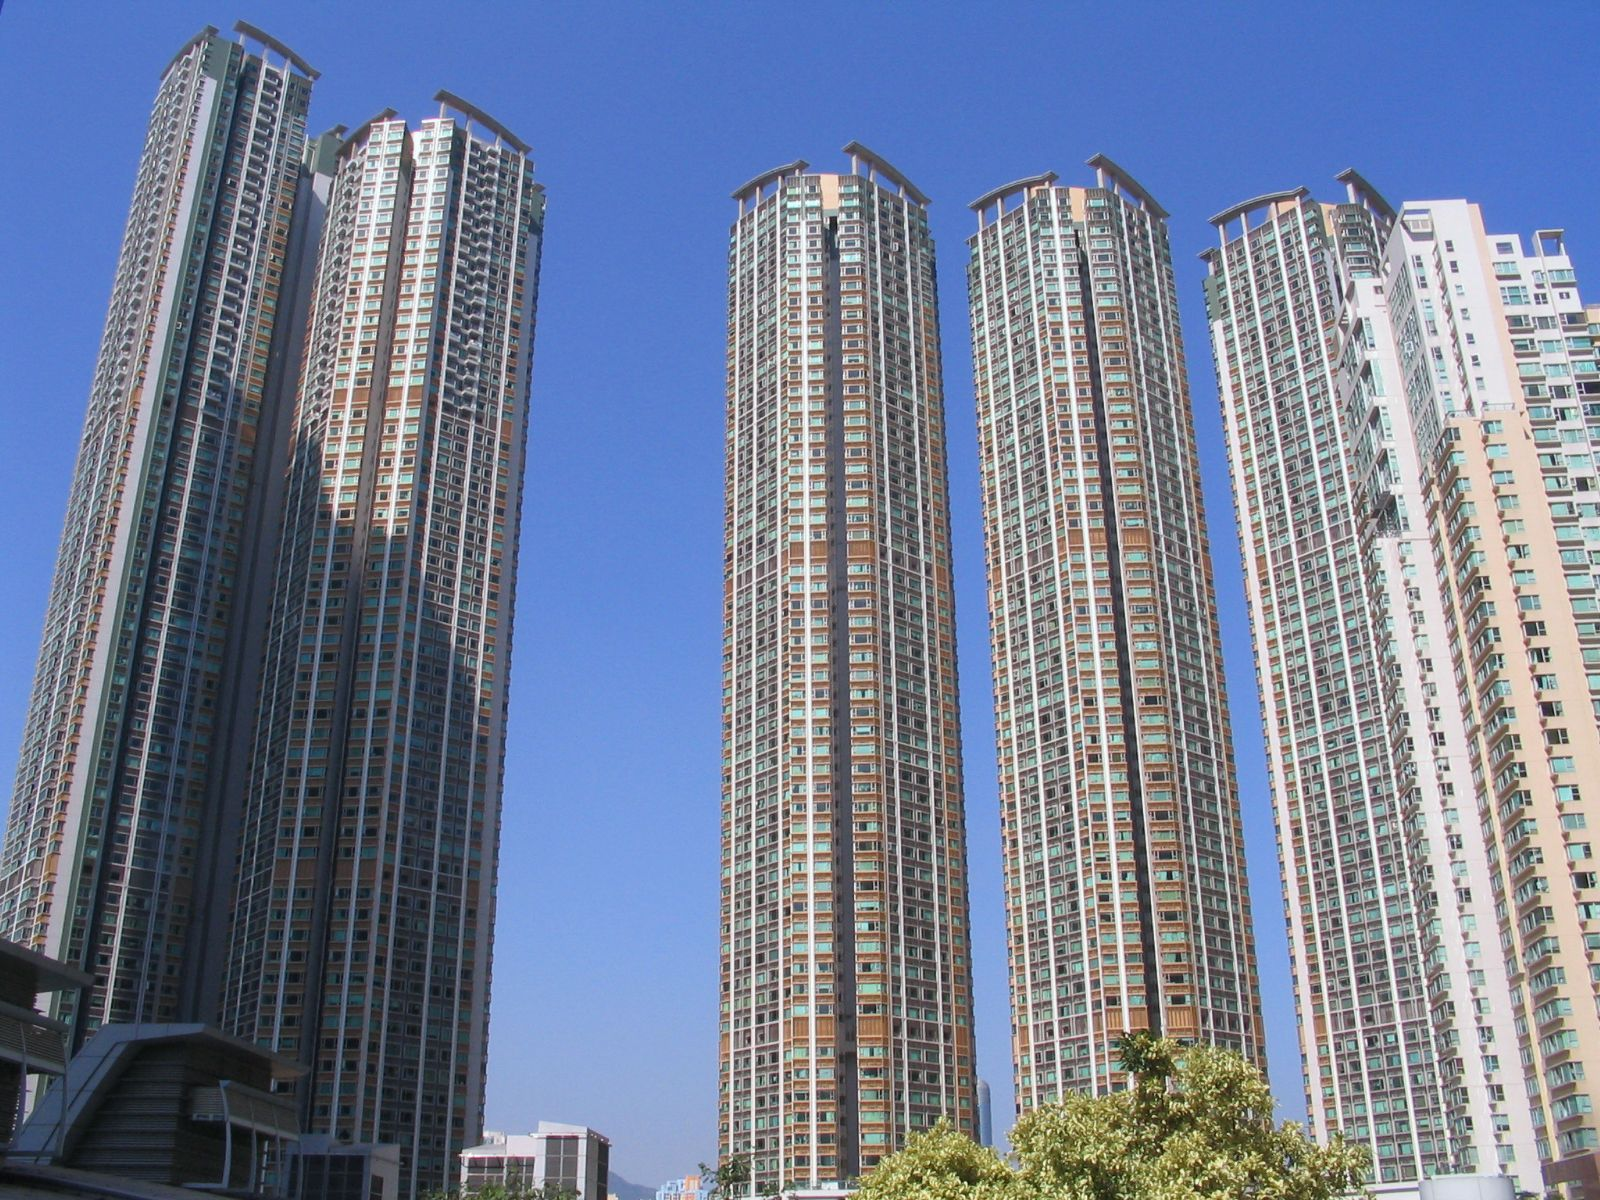 Hk Living Housing In Hong Kong - Teoalida's Website